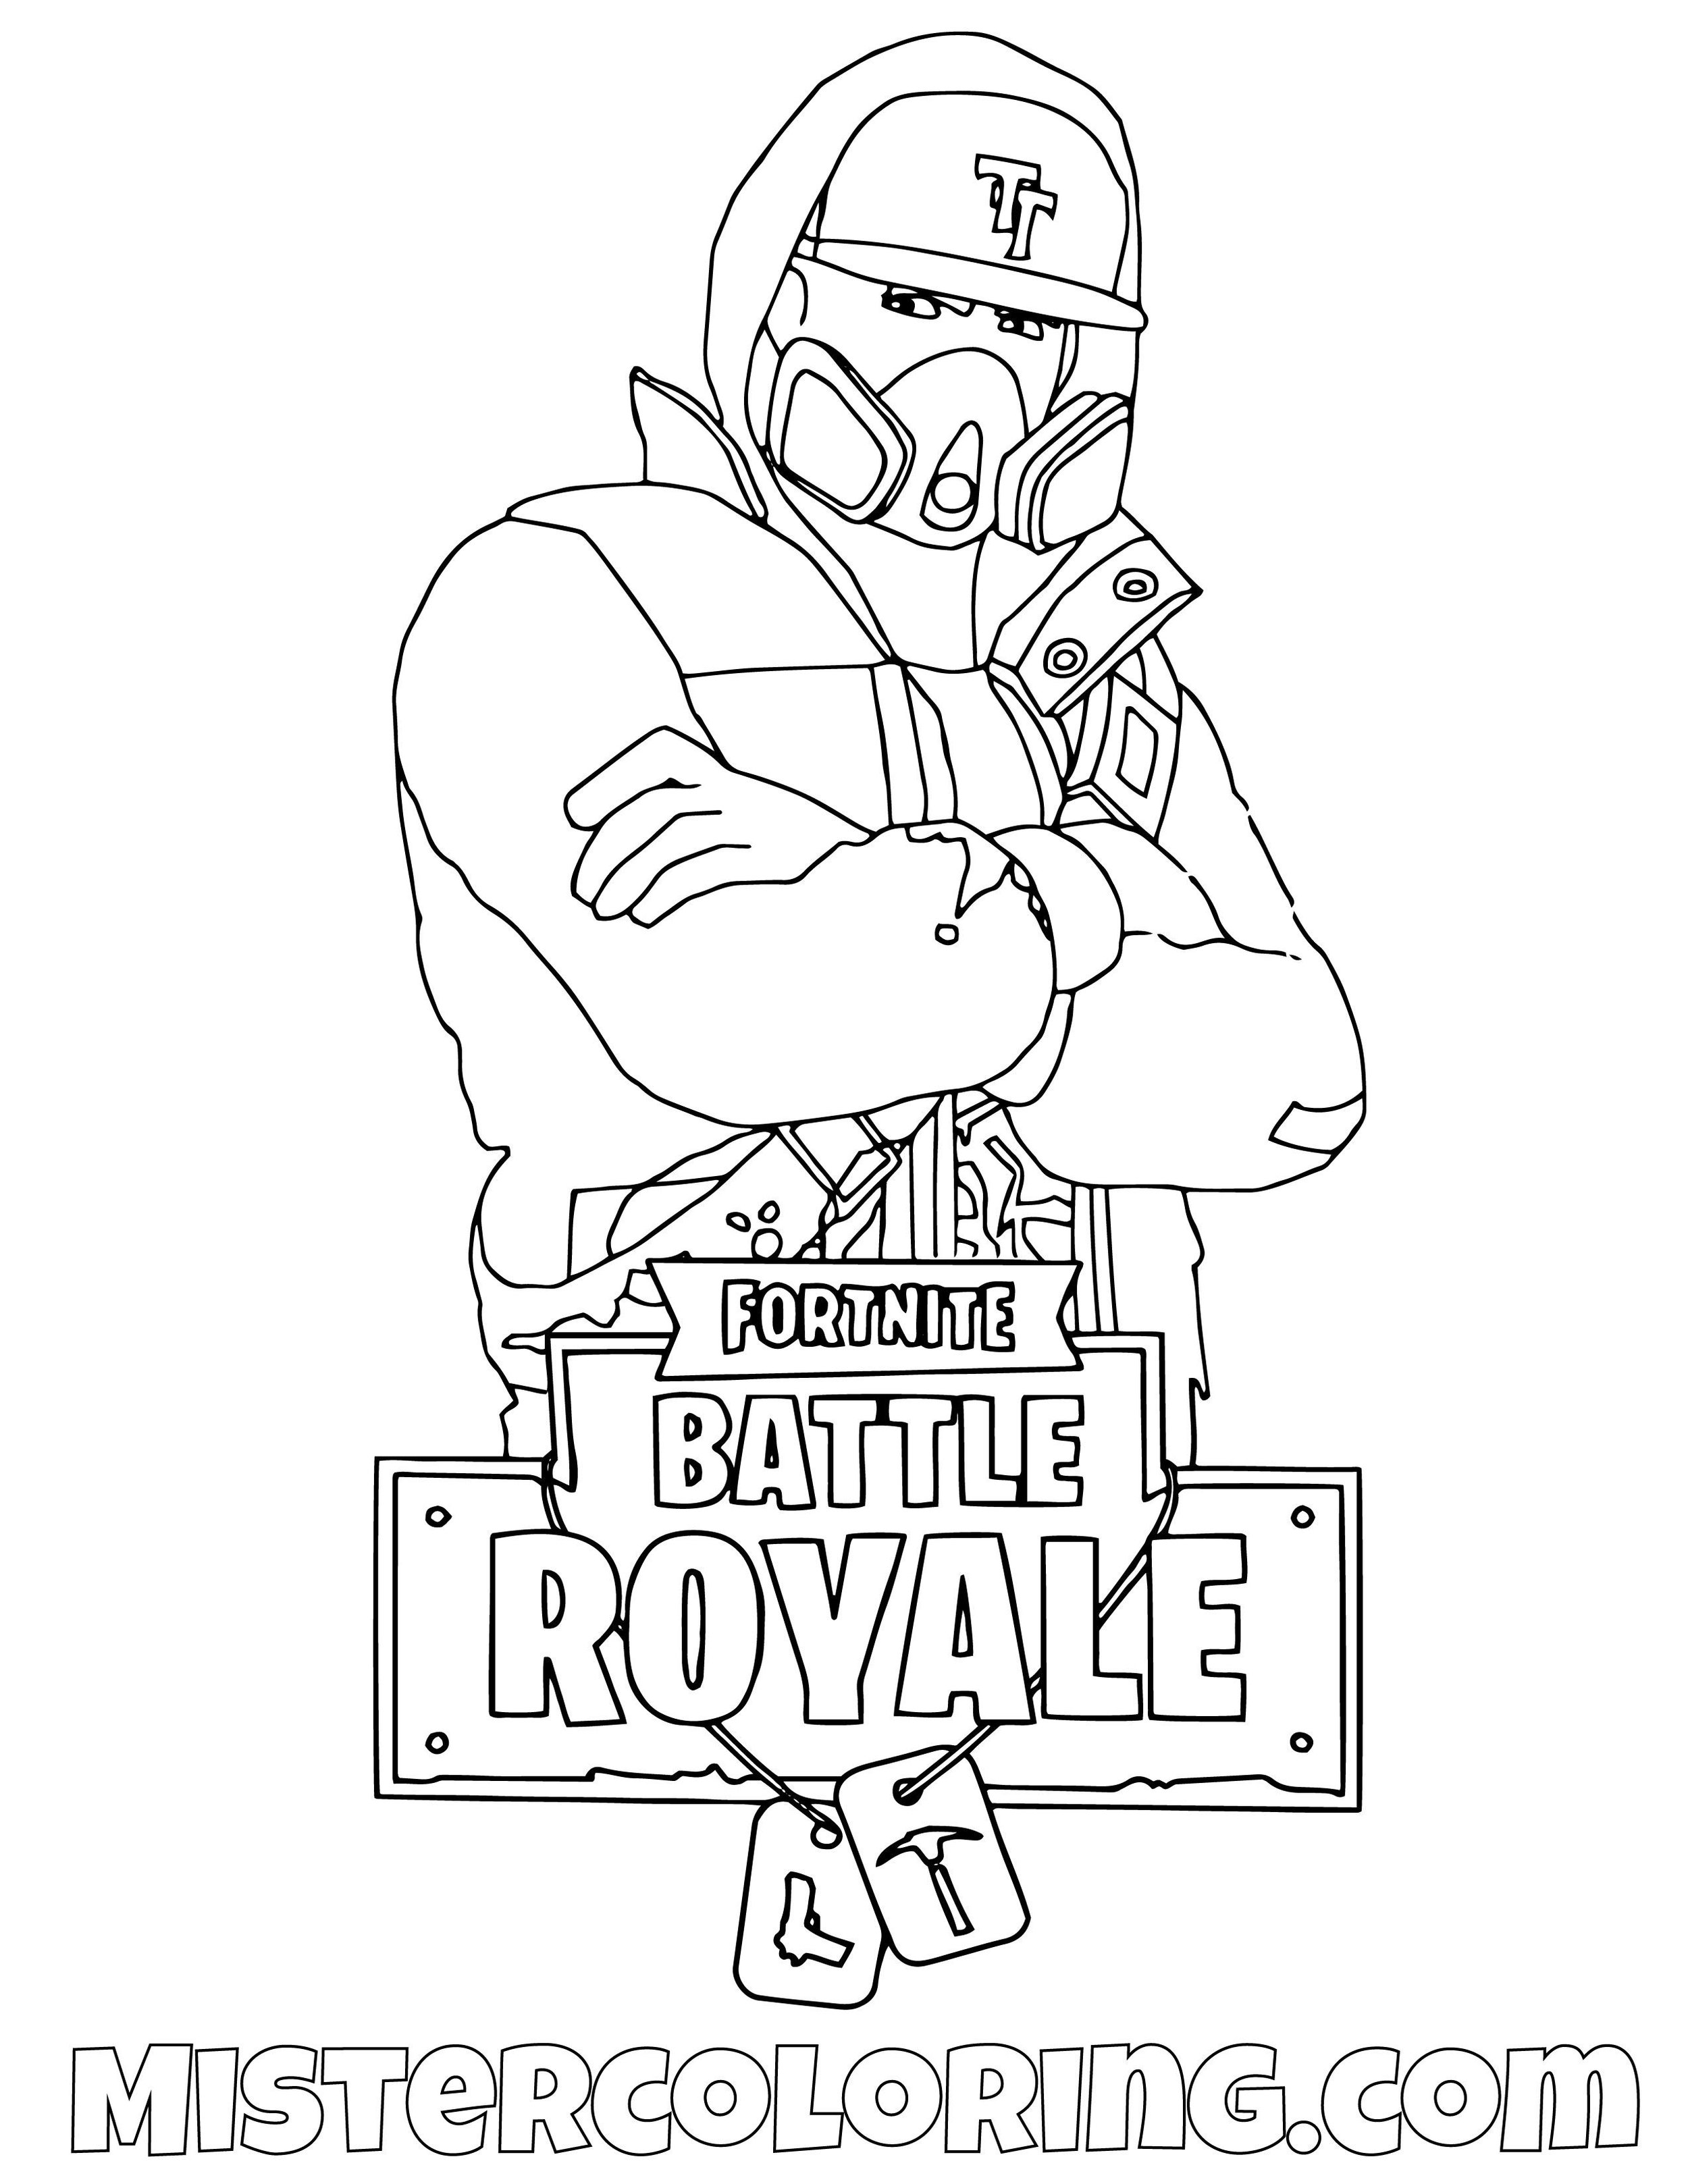 Drift Level 1 Fornite Skin Coloring Page